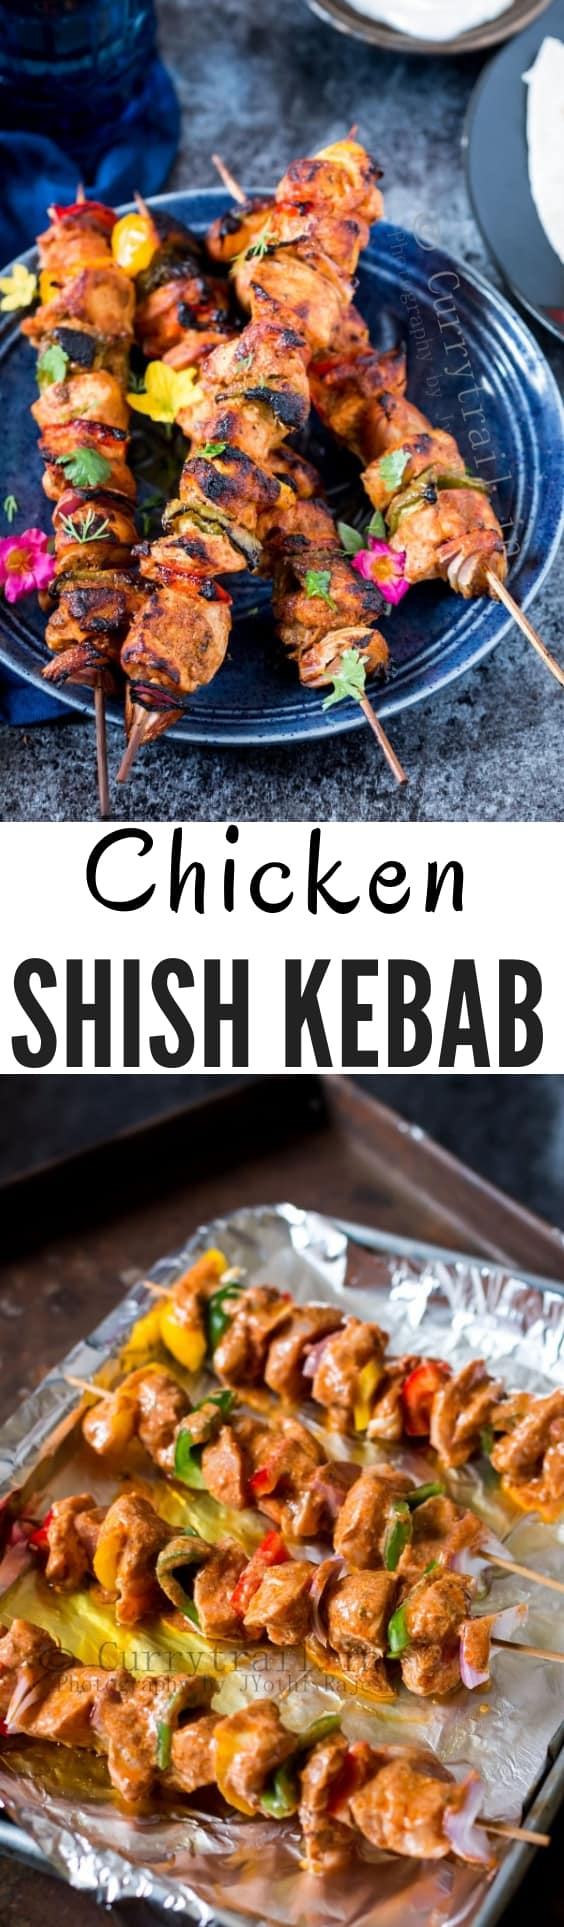 chicken shish kebab with text overlay